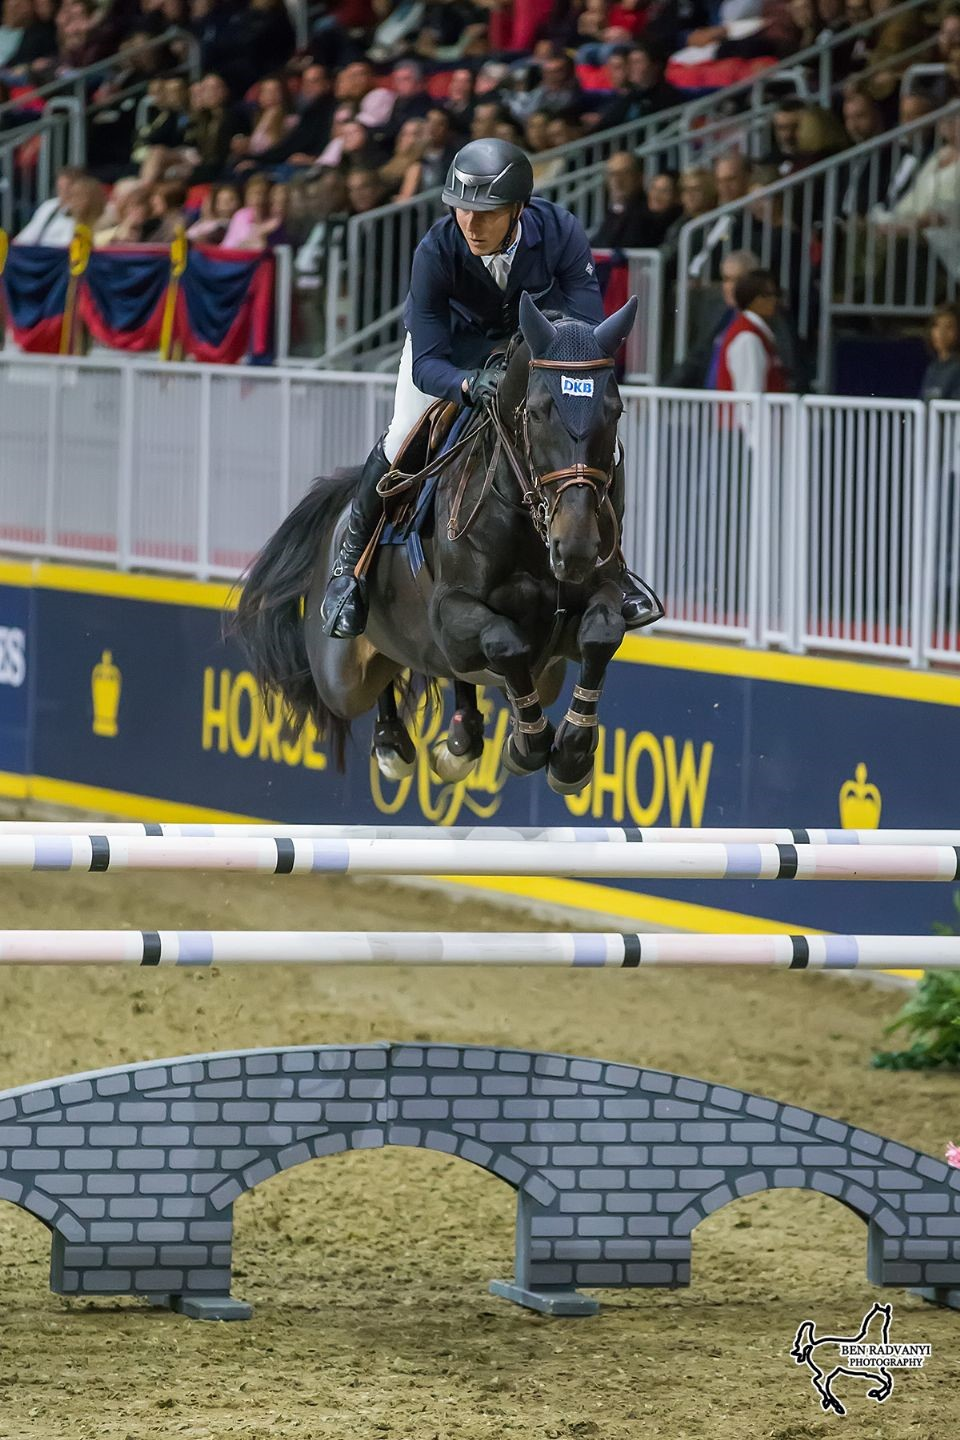 Germany's David Will Scores Back-to-Back Victories at Royal Horse